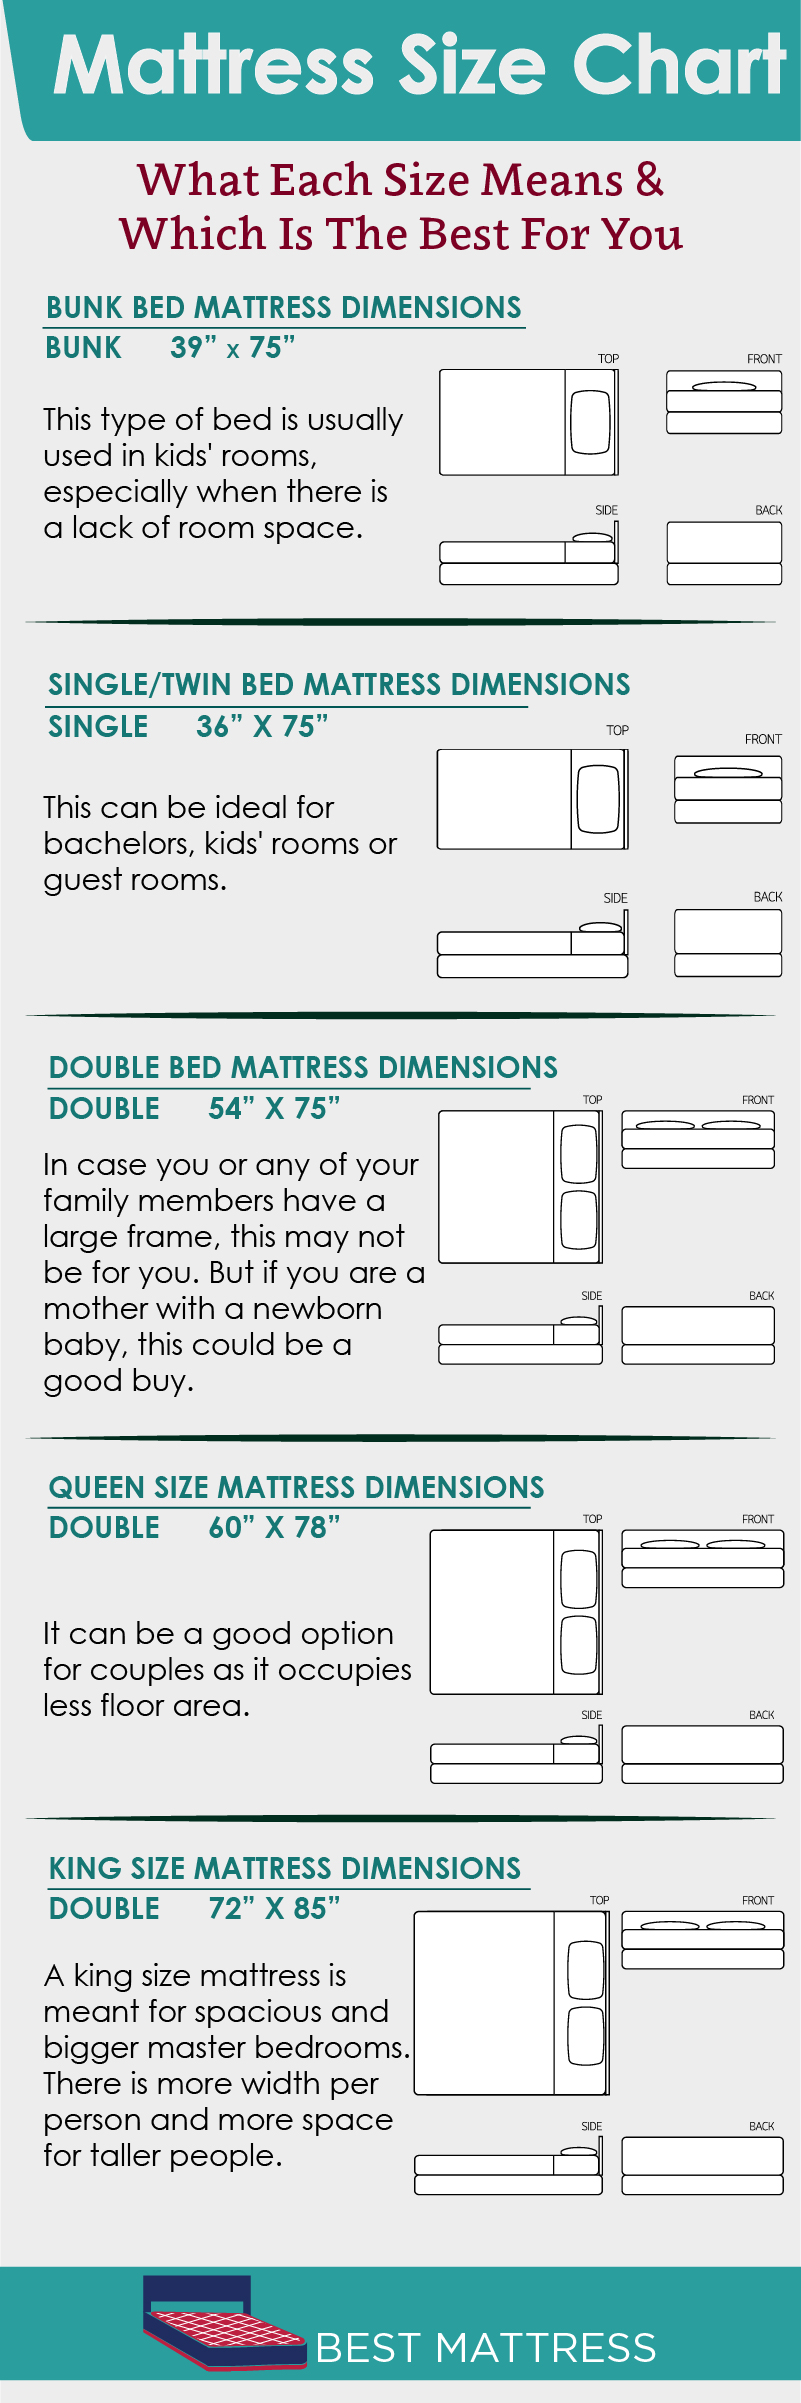 Bunk bed mattress size gallery of bunk bed mattress size dimensions home design ideas ikea Size of standard twin mattress